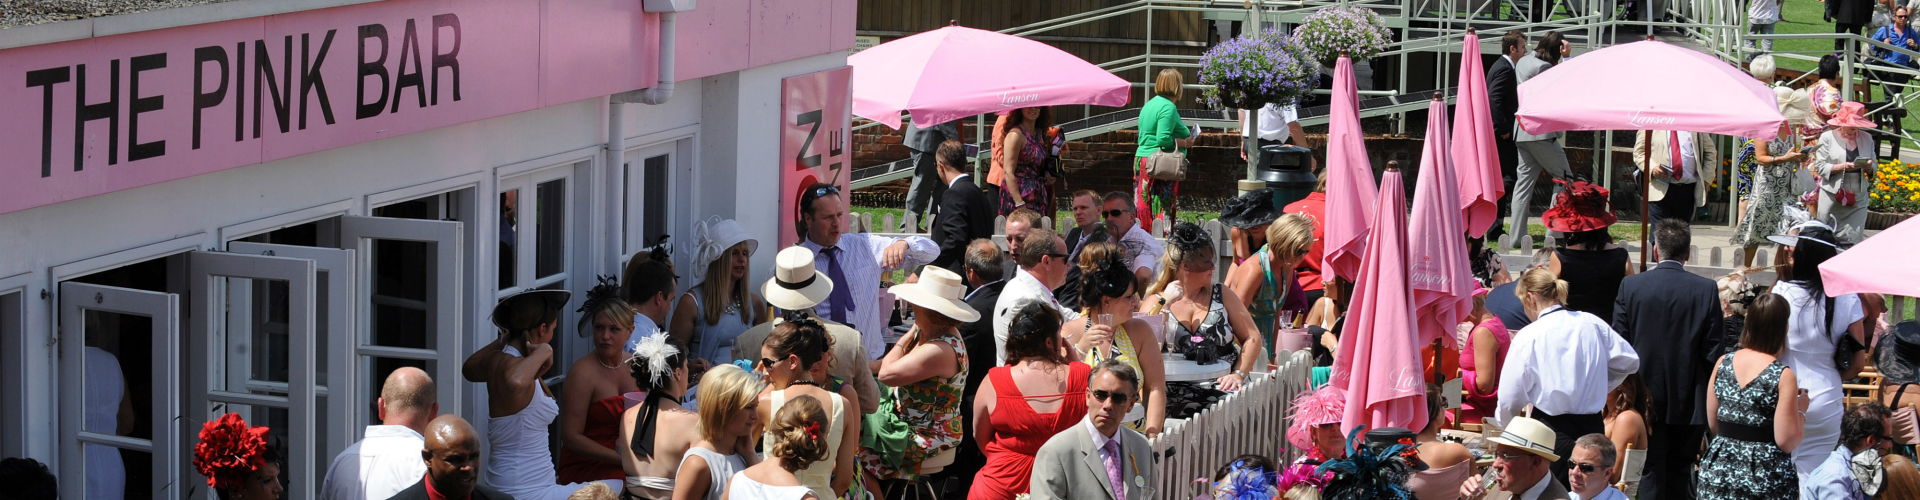 Corporate Hospitality Banner Image - The Pink Bar